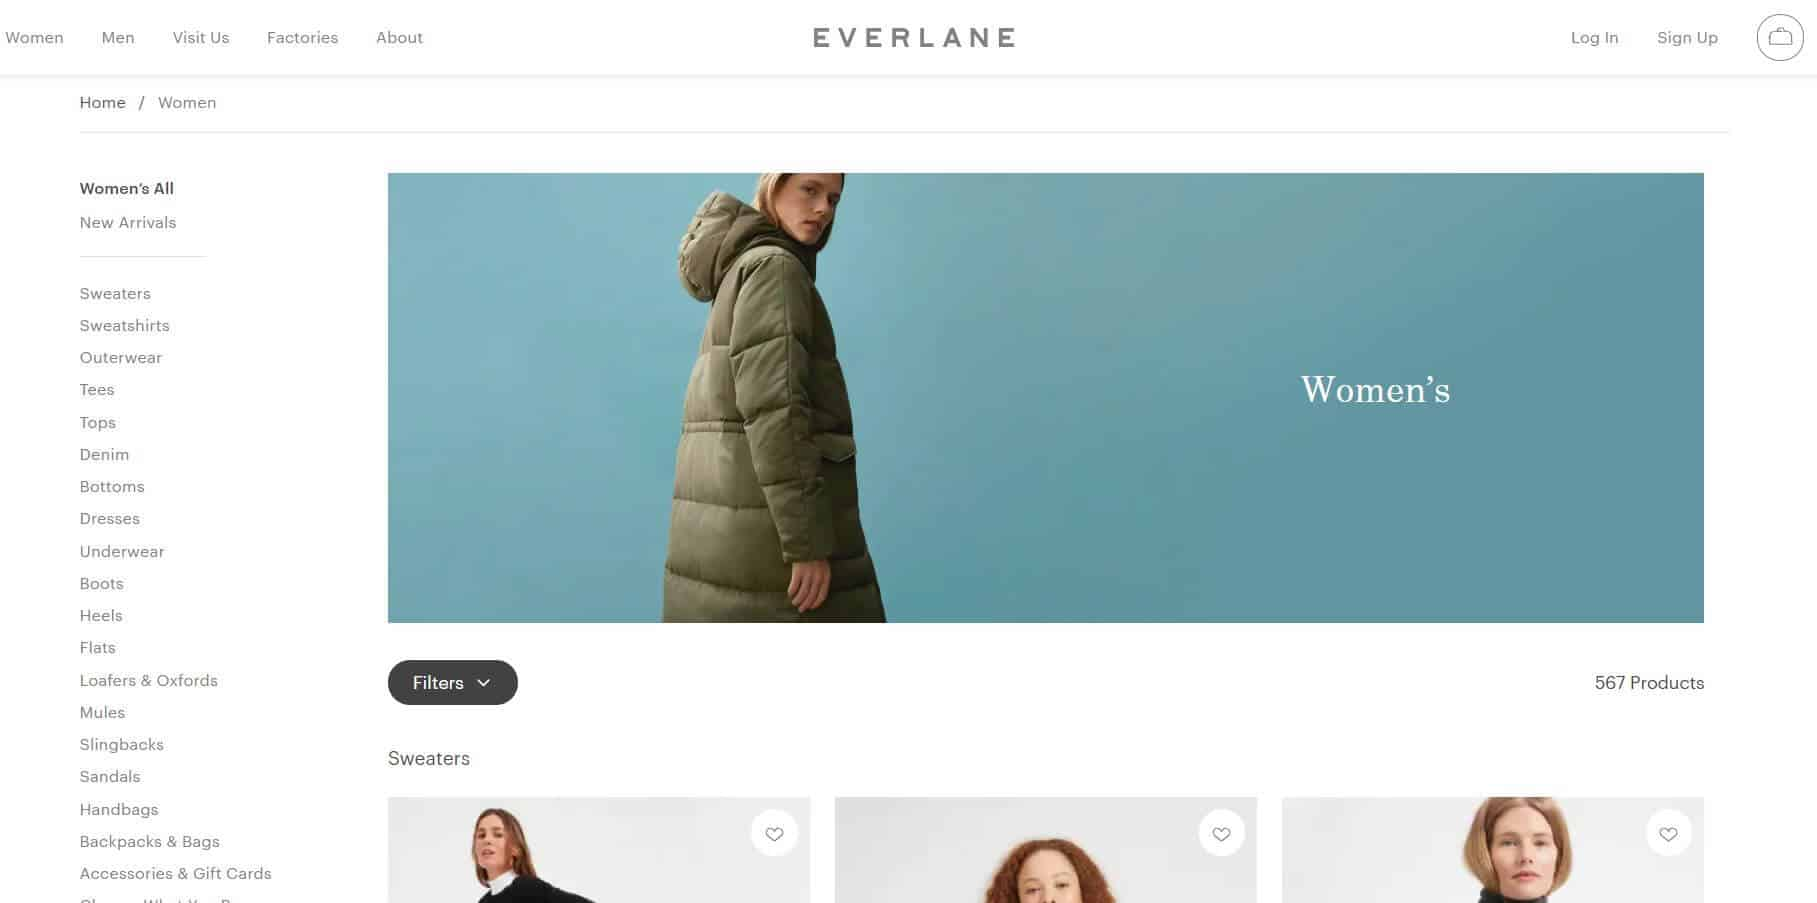 Everlane Screenshot